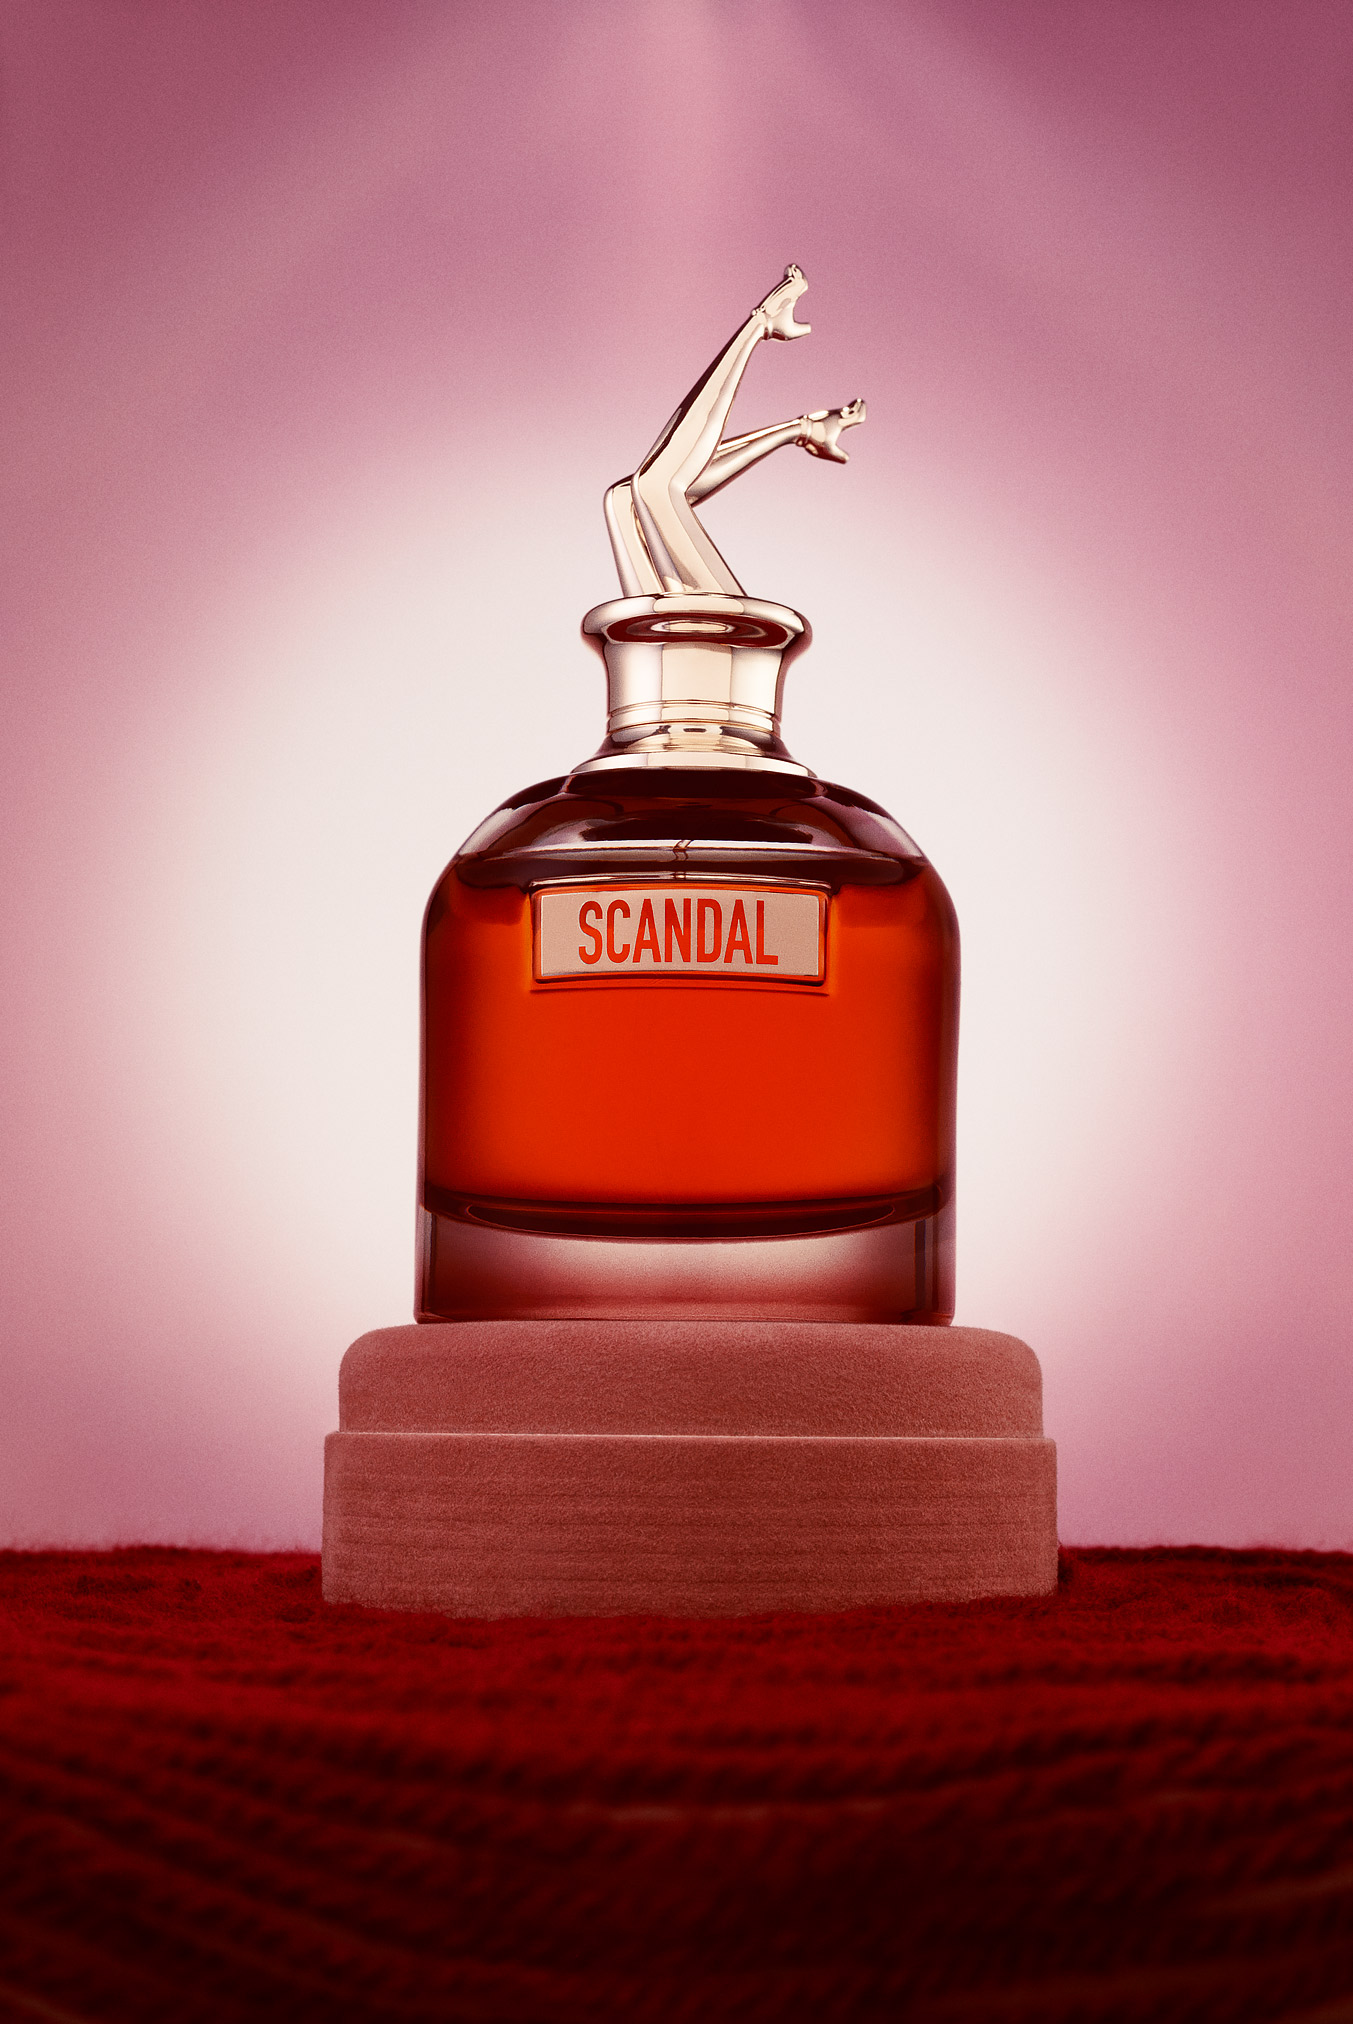 Scandal by night - Jean Paul Gaultier